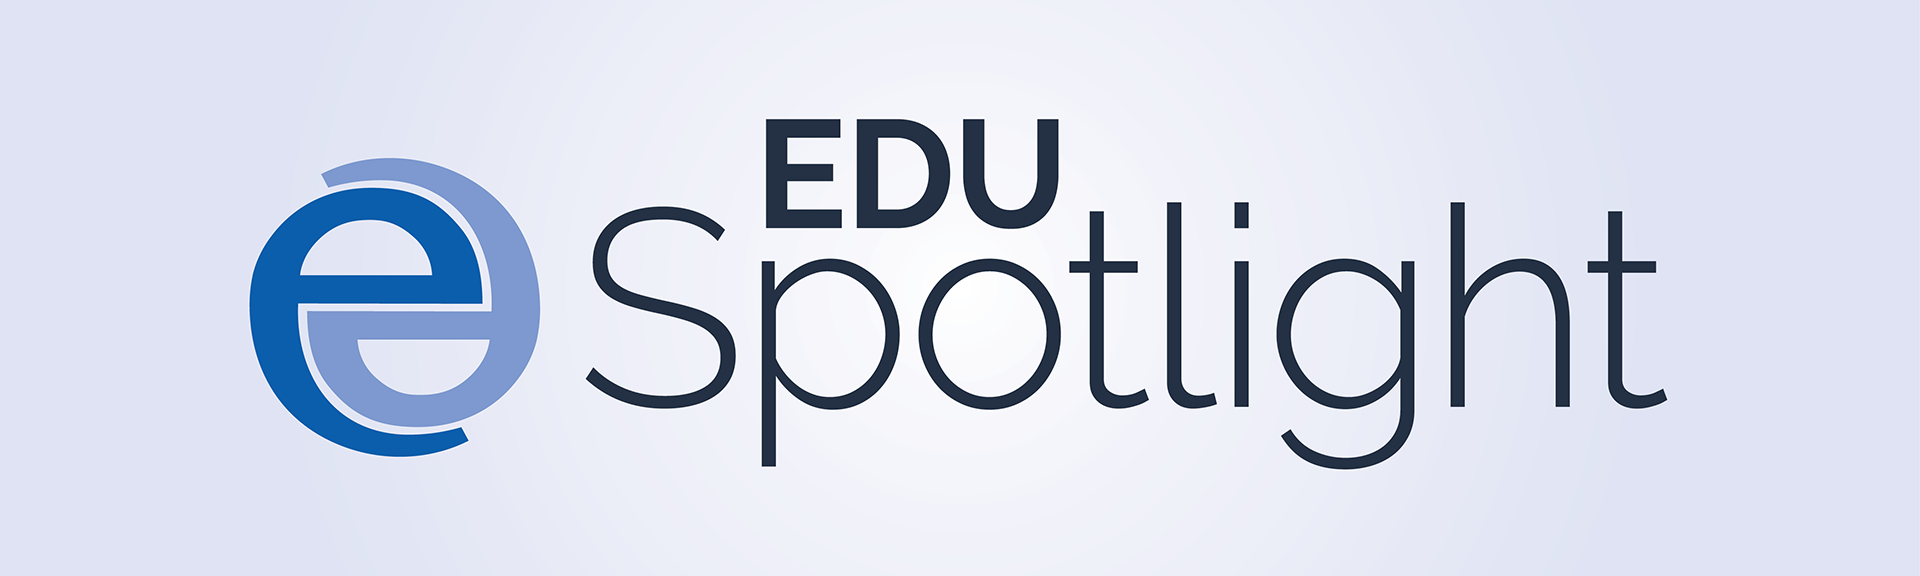 Equinox EDU Spotlight